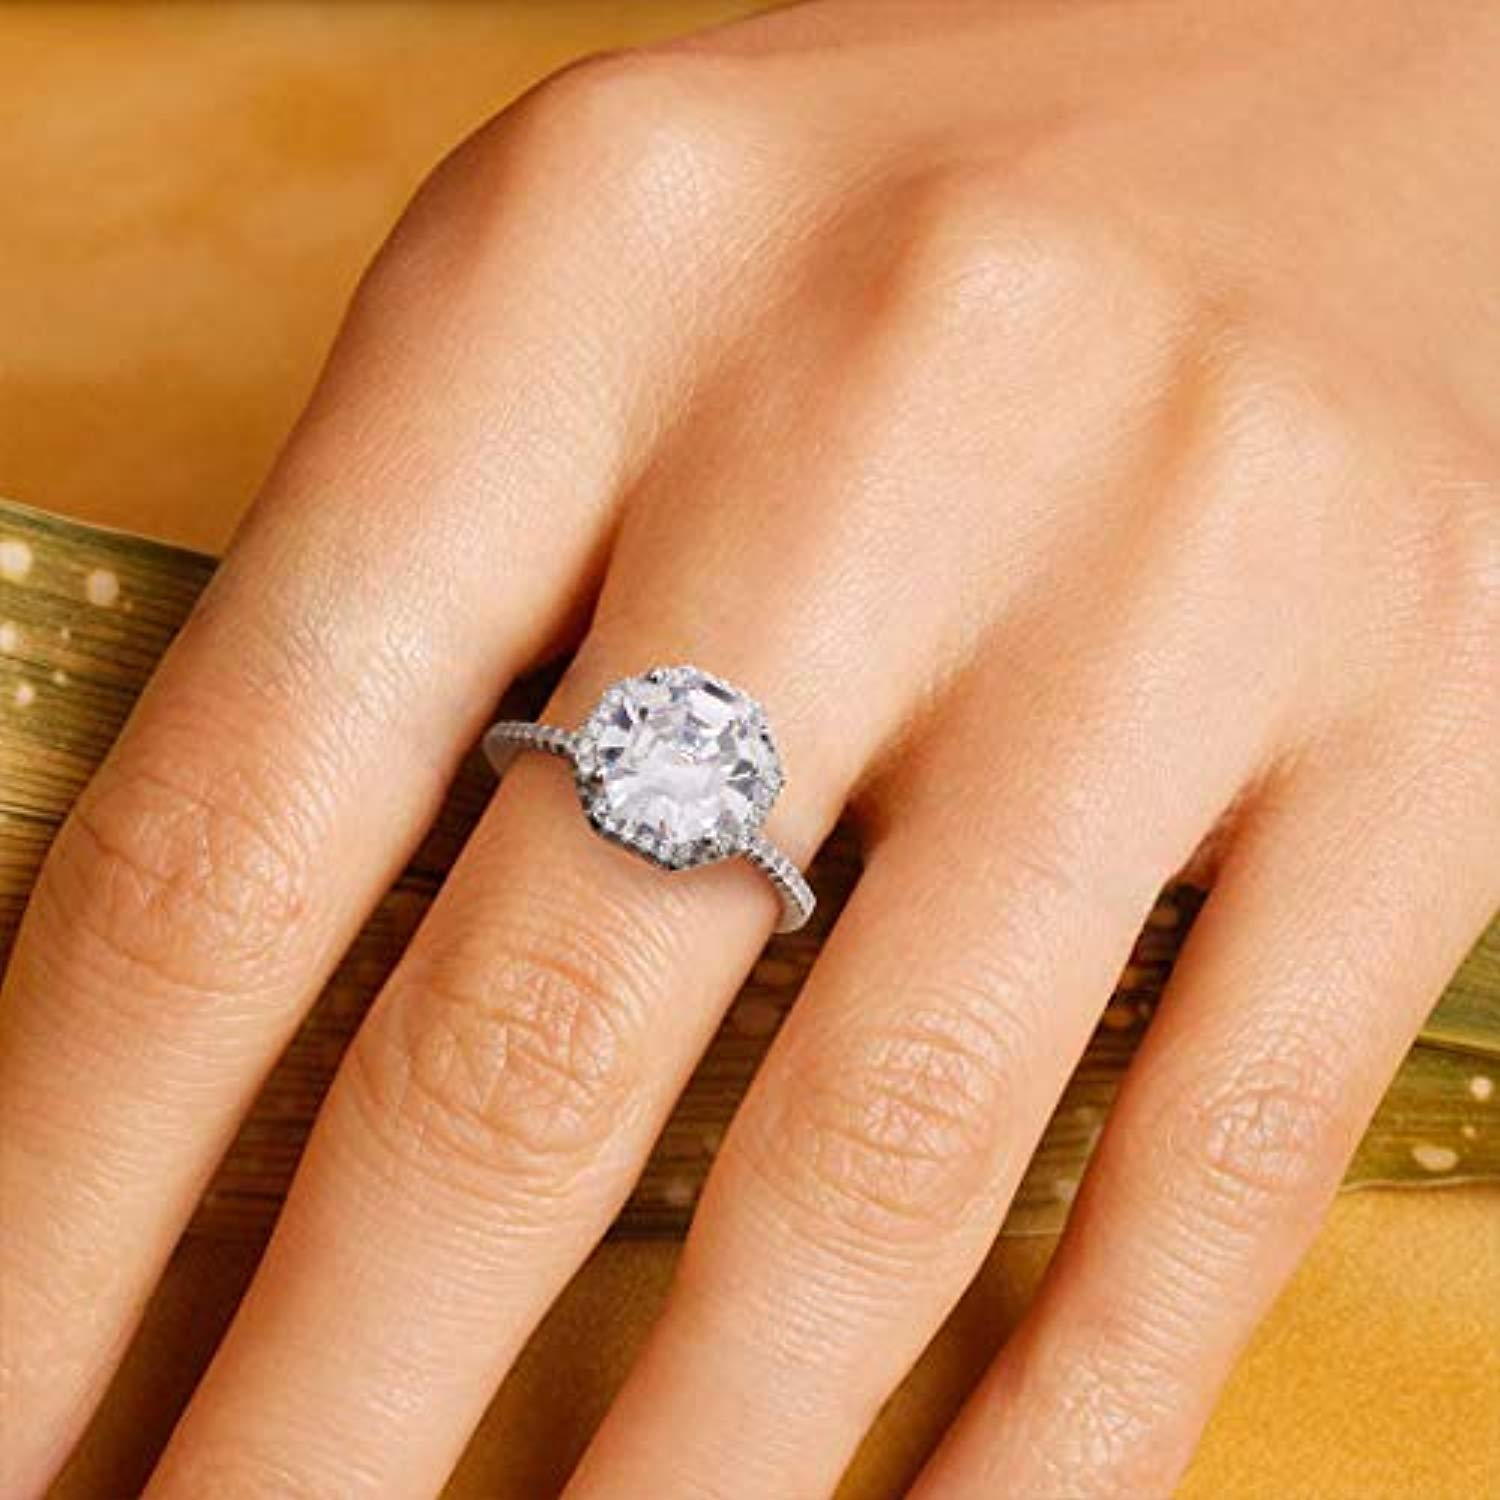 Wedding Engagement Promise Ring Rhodium Plated 925 Sterling Silver Square Halo Pave Cubic Zirconia CZ Jewelry for Wife Lover Girlfriend